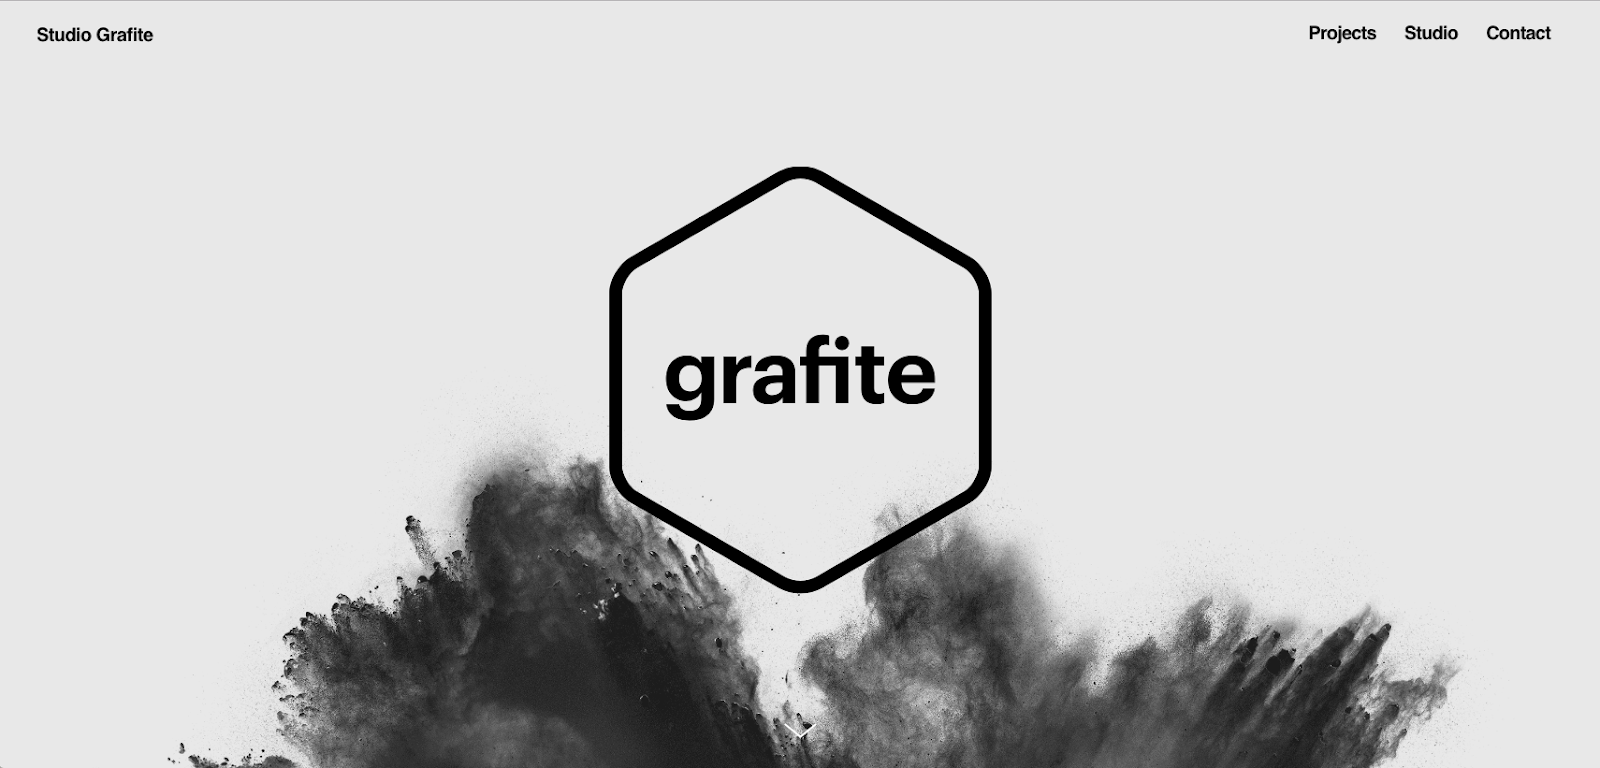 Studio Grafite Website